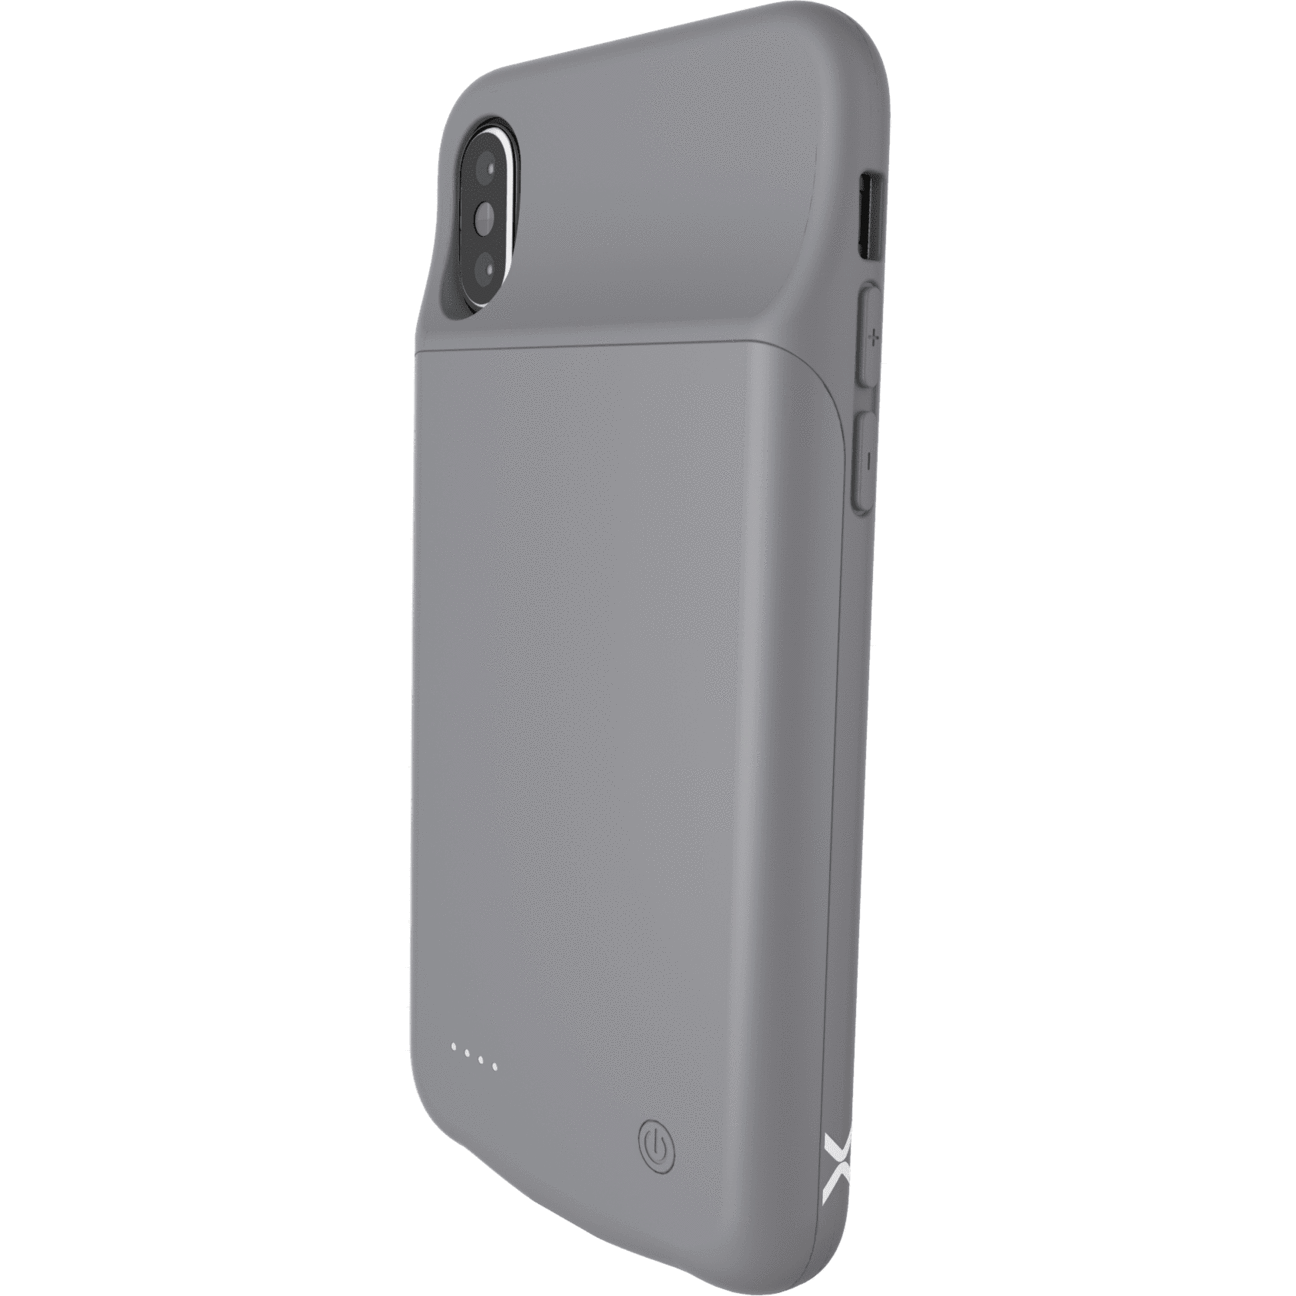 size 40 05c4e 66b8b Lux iPhone Battery Case | Xs max | Wireless charging pad, Mobile ...